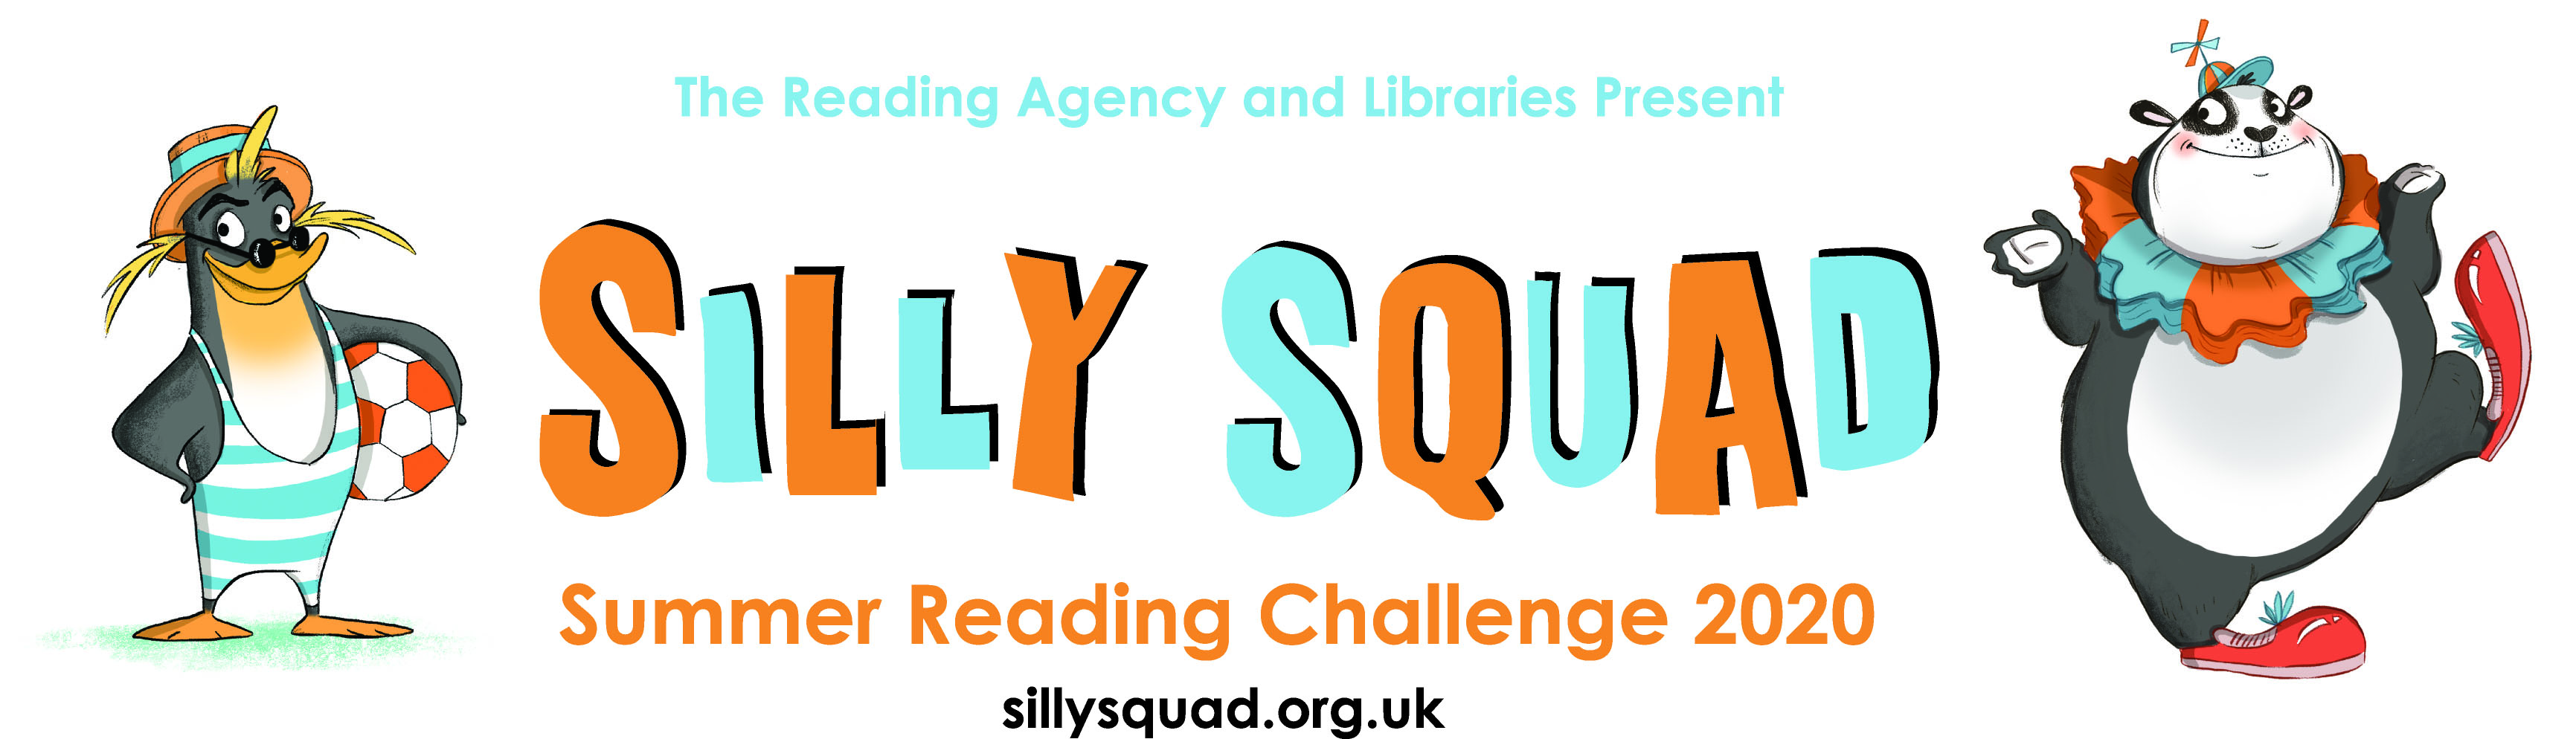 Digital summer reading challenge launched